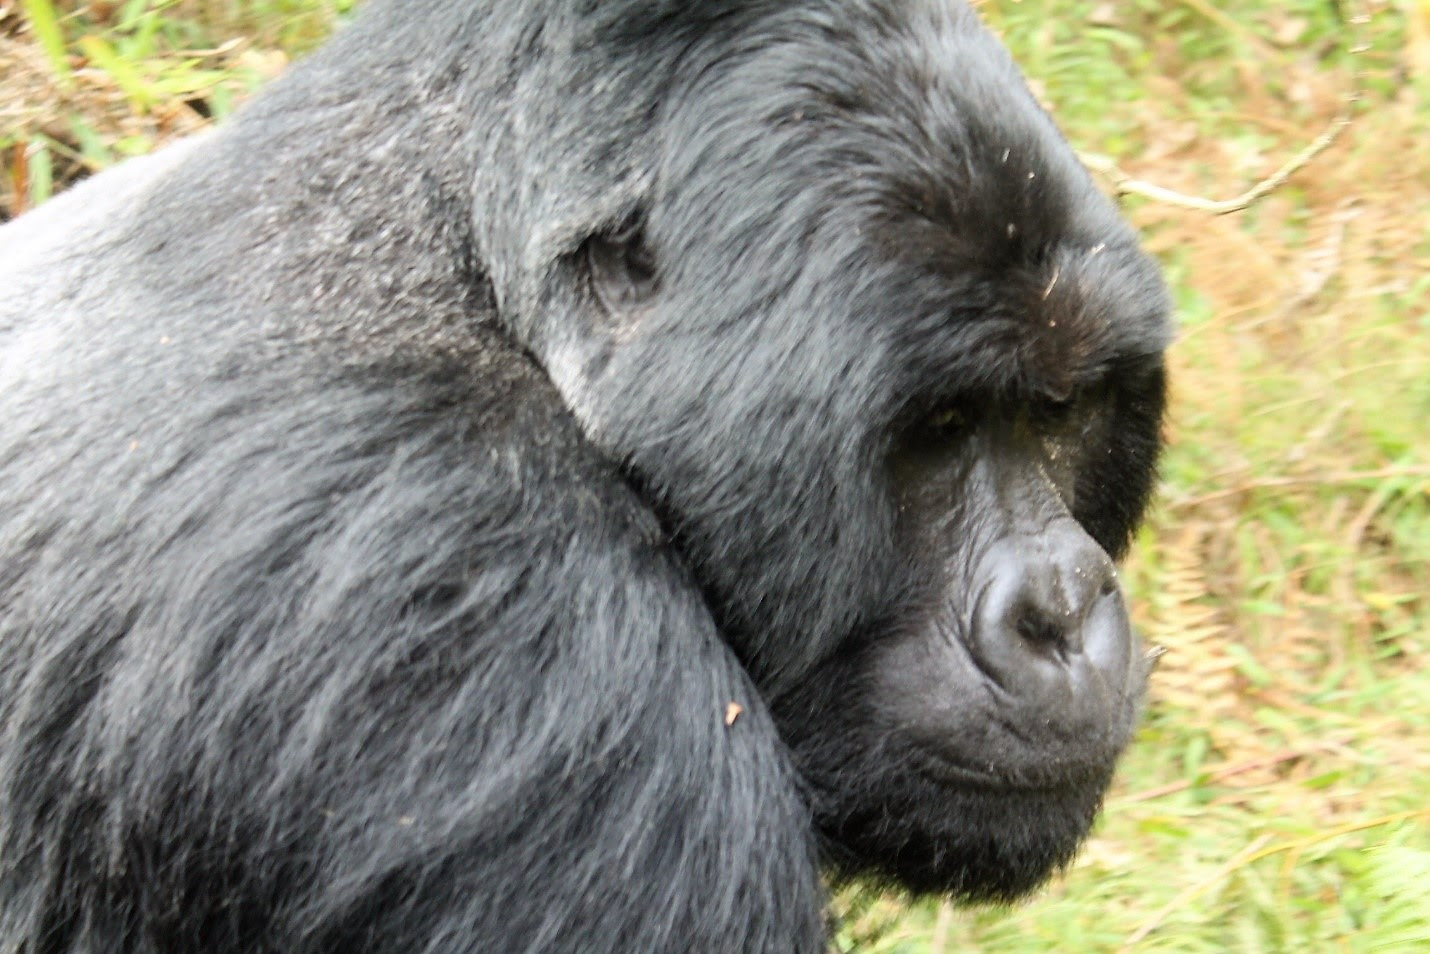 Mountain gorillas background information